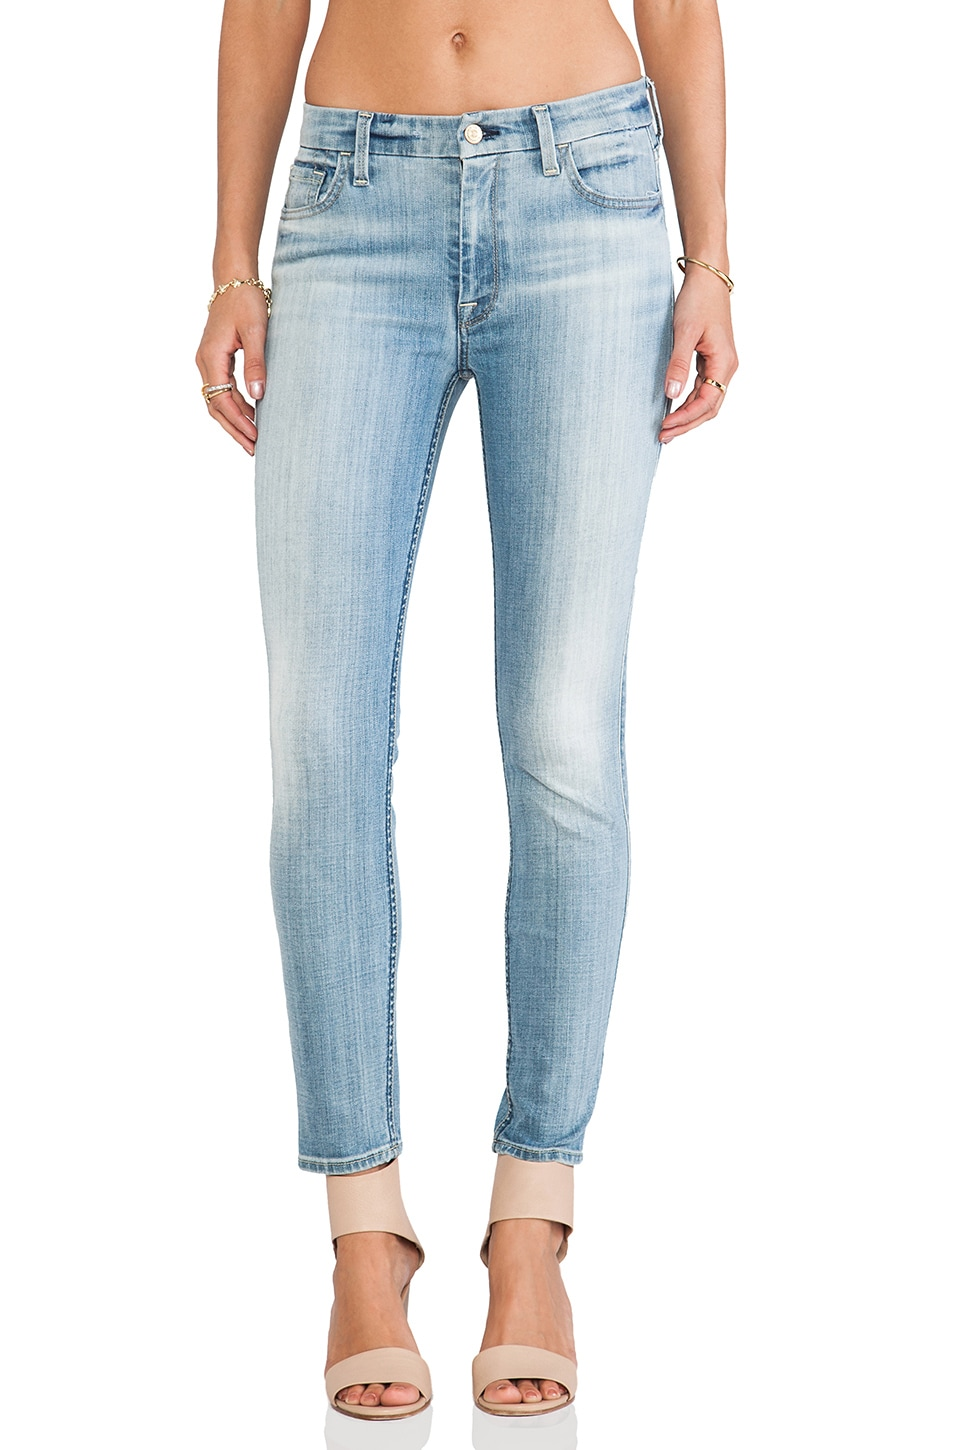 7 For All Mankind High Waist Ankle Skinny in Slim Illusion Faded Blue